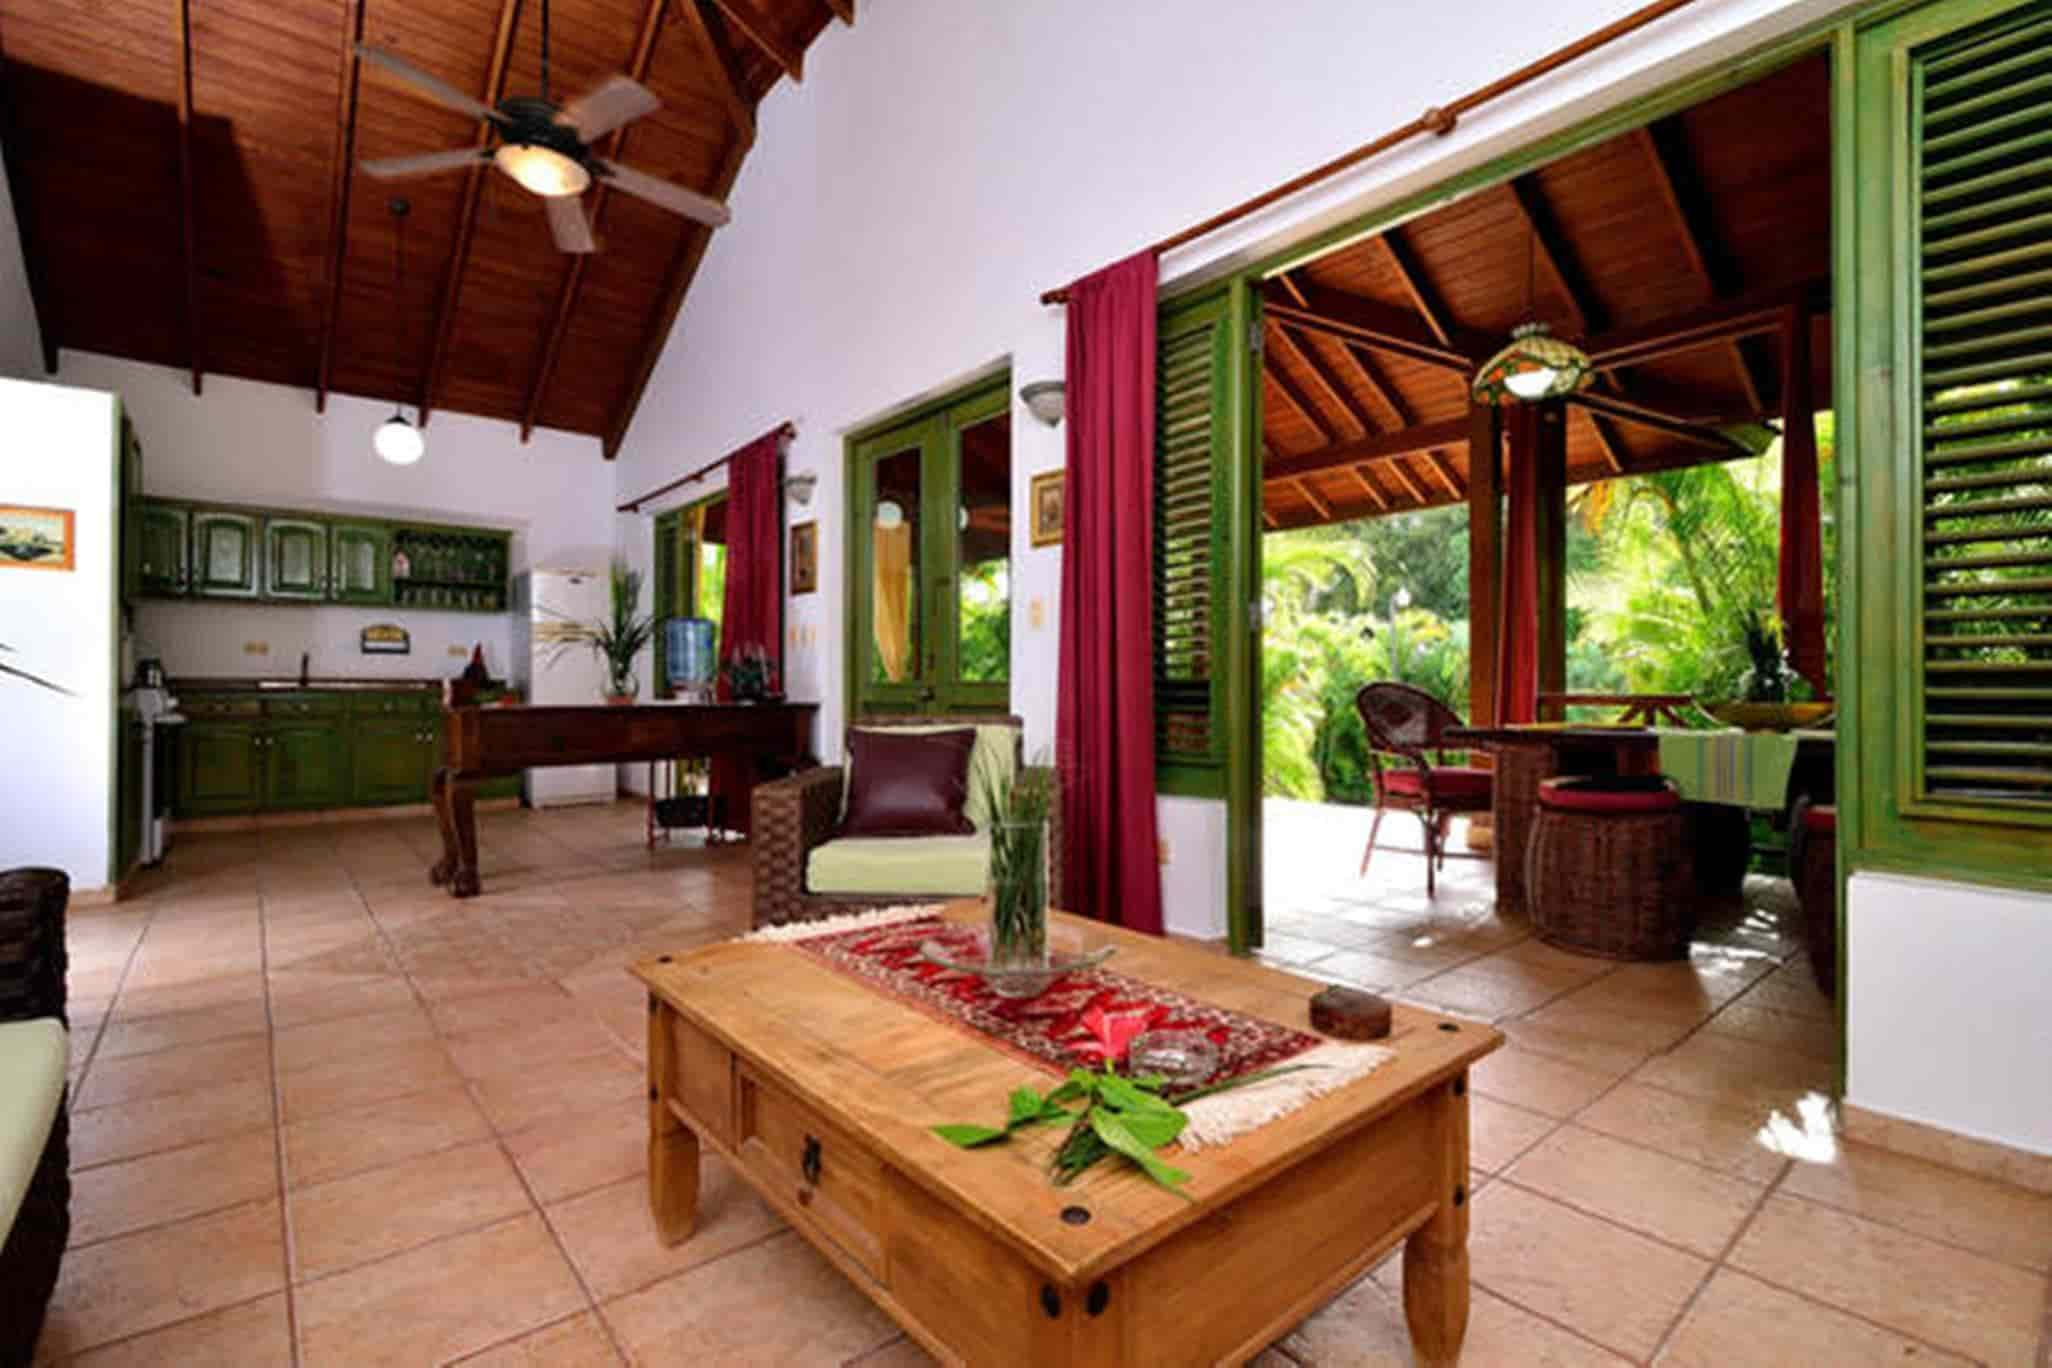 Vacation Home Rentals At The Beach In Sosua Dominican